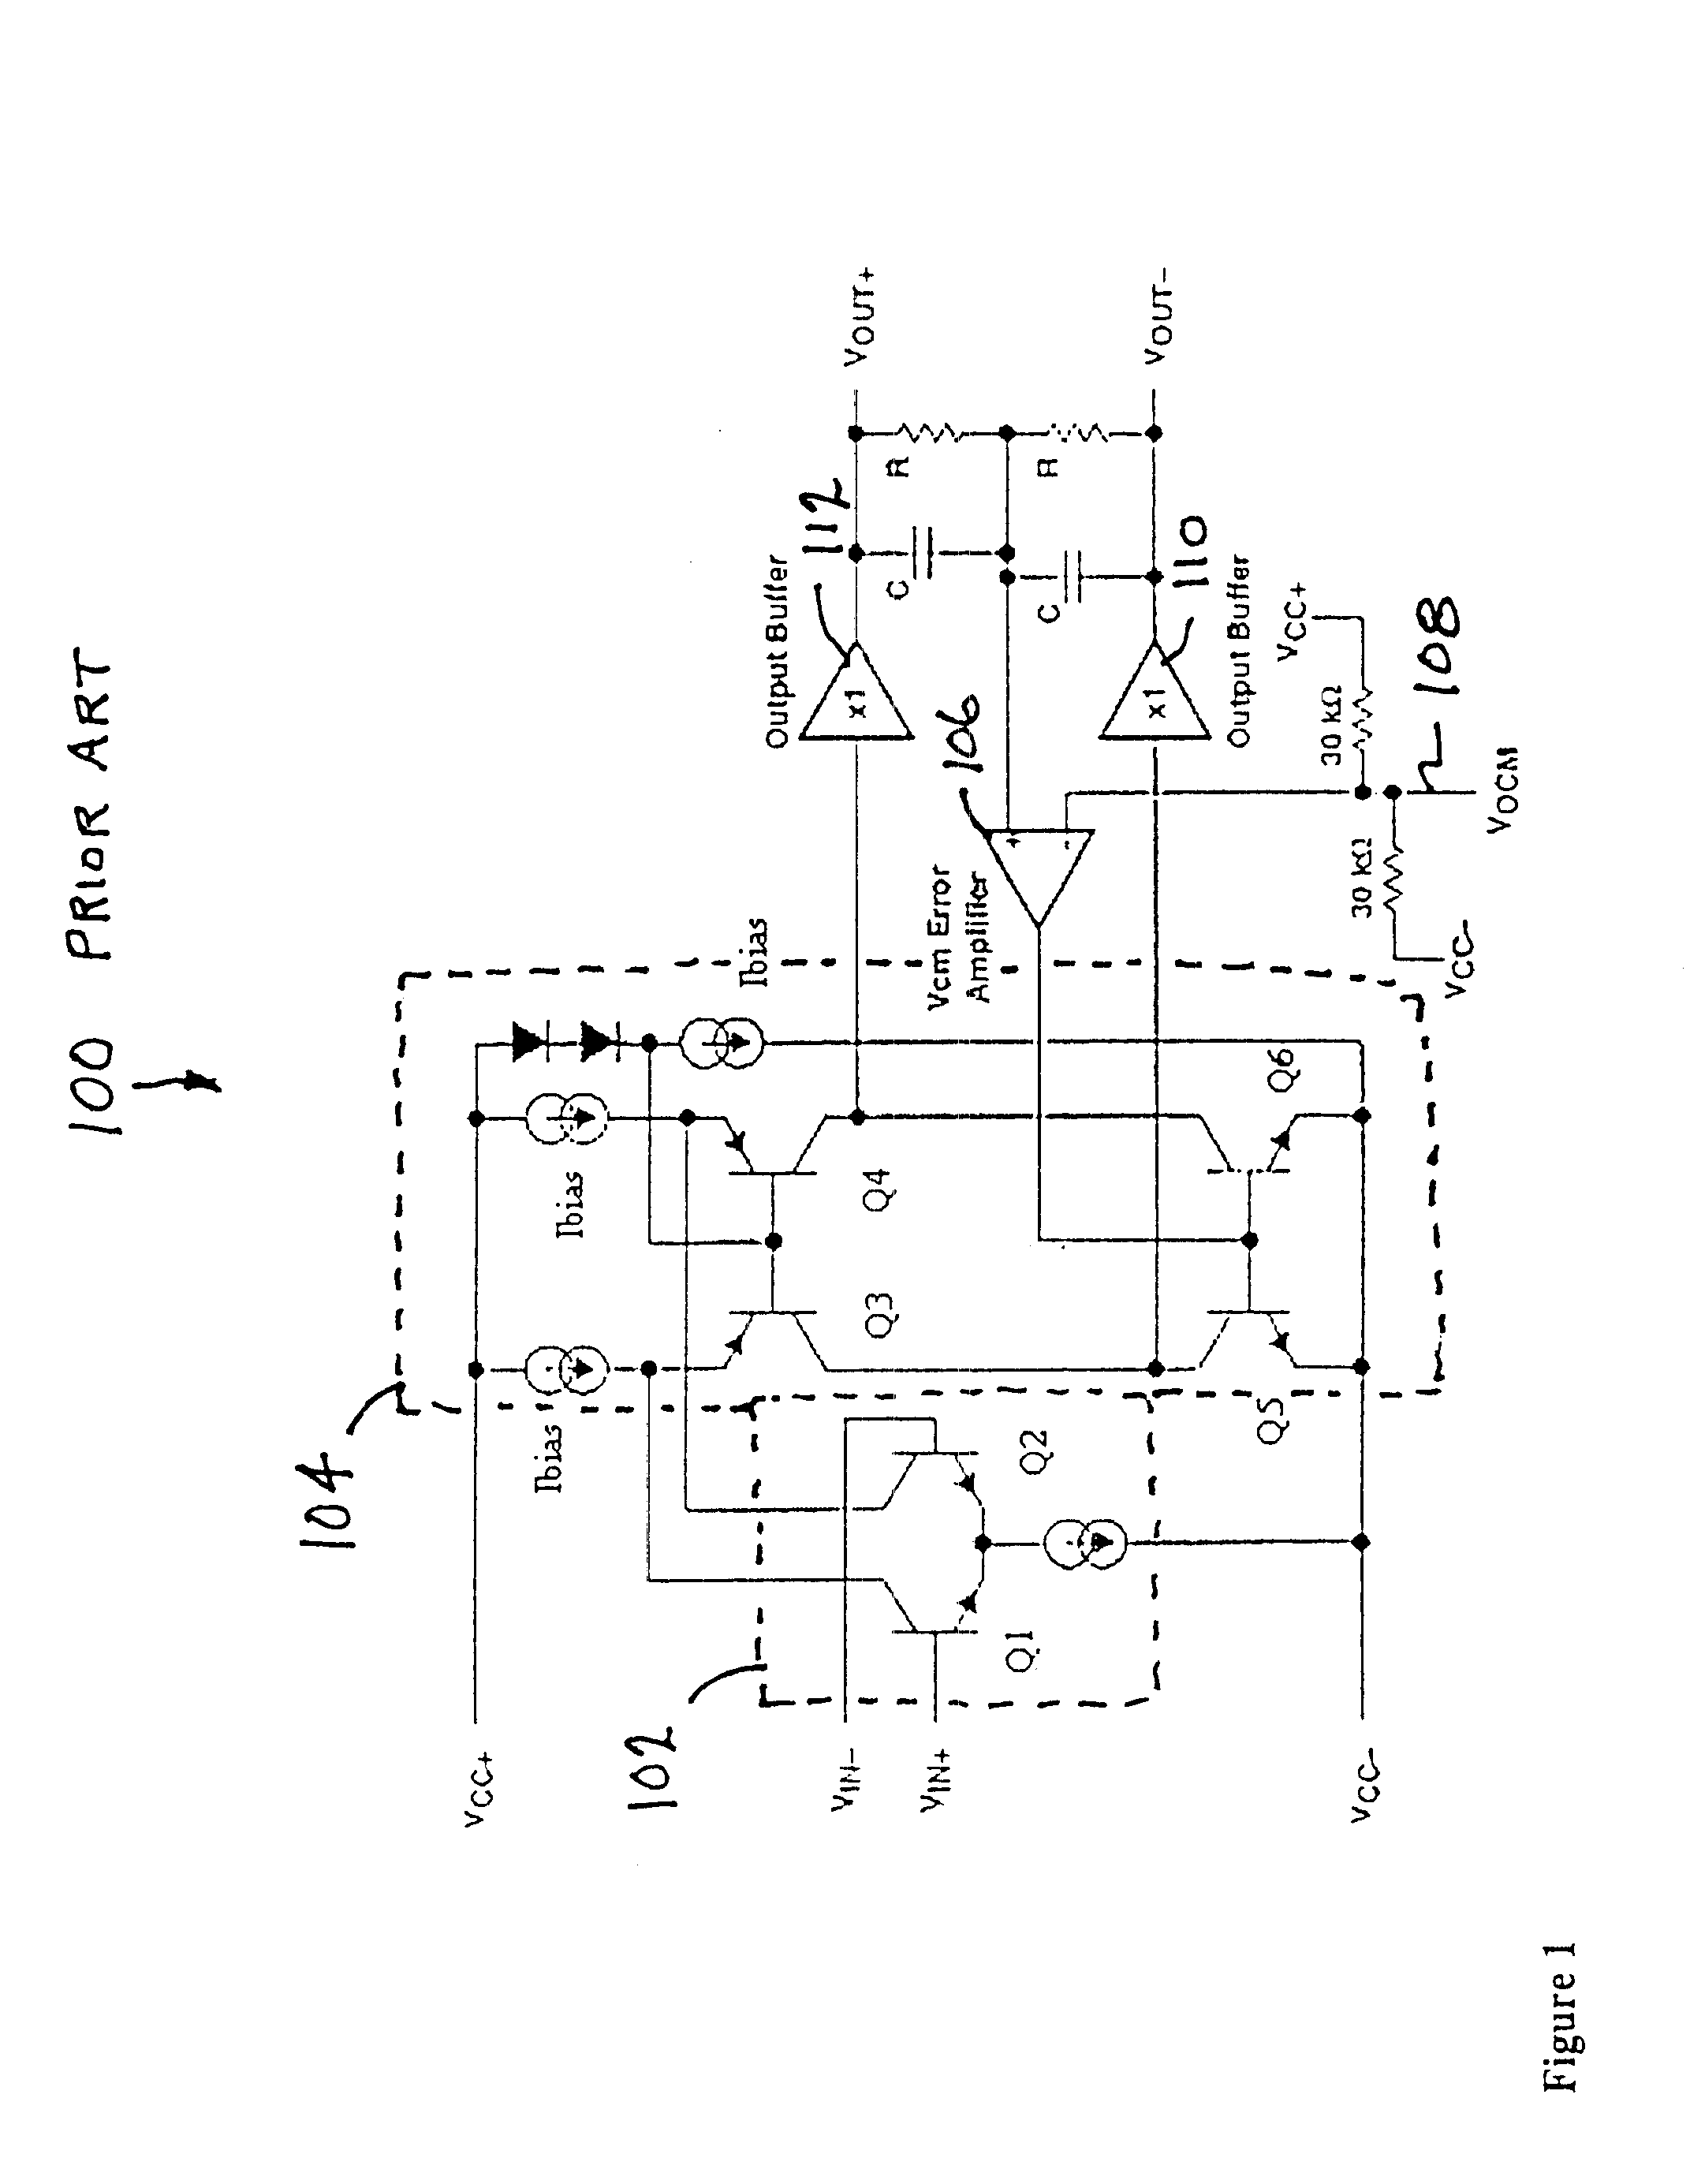 Patent Us6459338 Single Loop Output Common Mode Feedback Circuit Inverting Amplifier With Class Ab Drawing